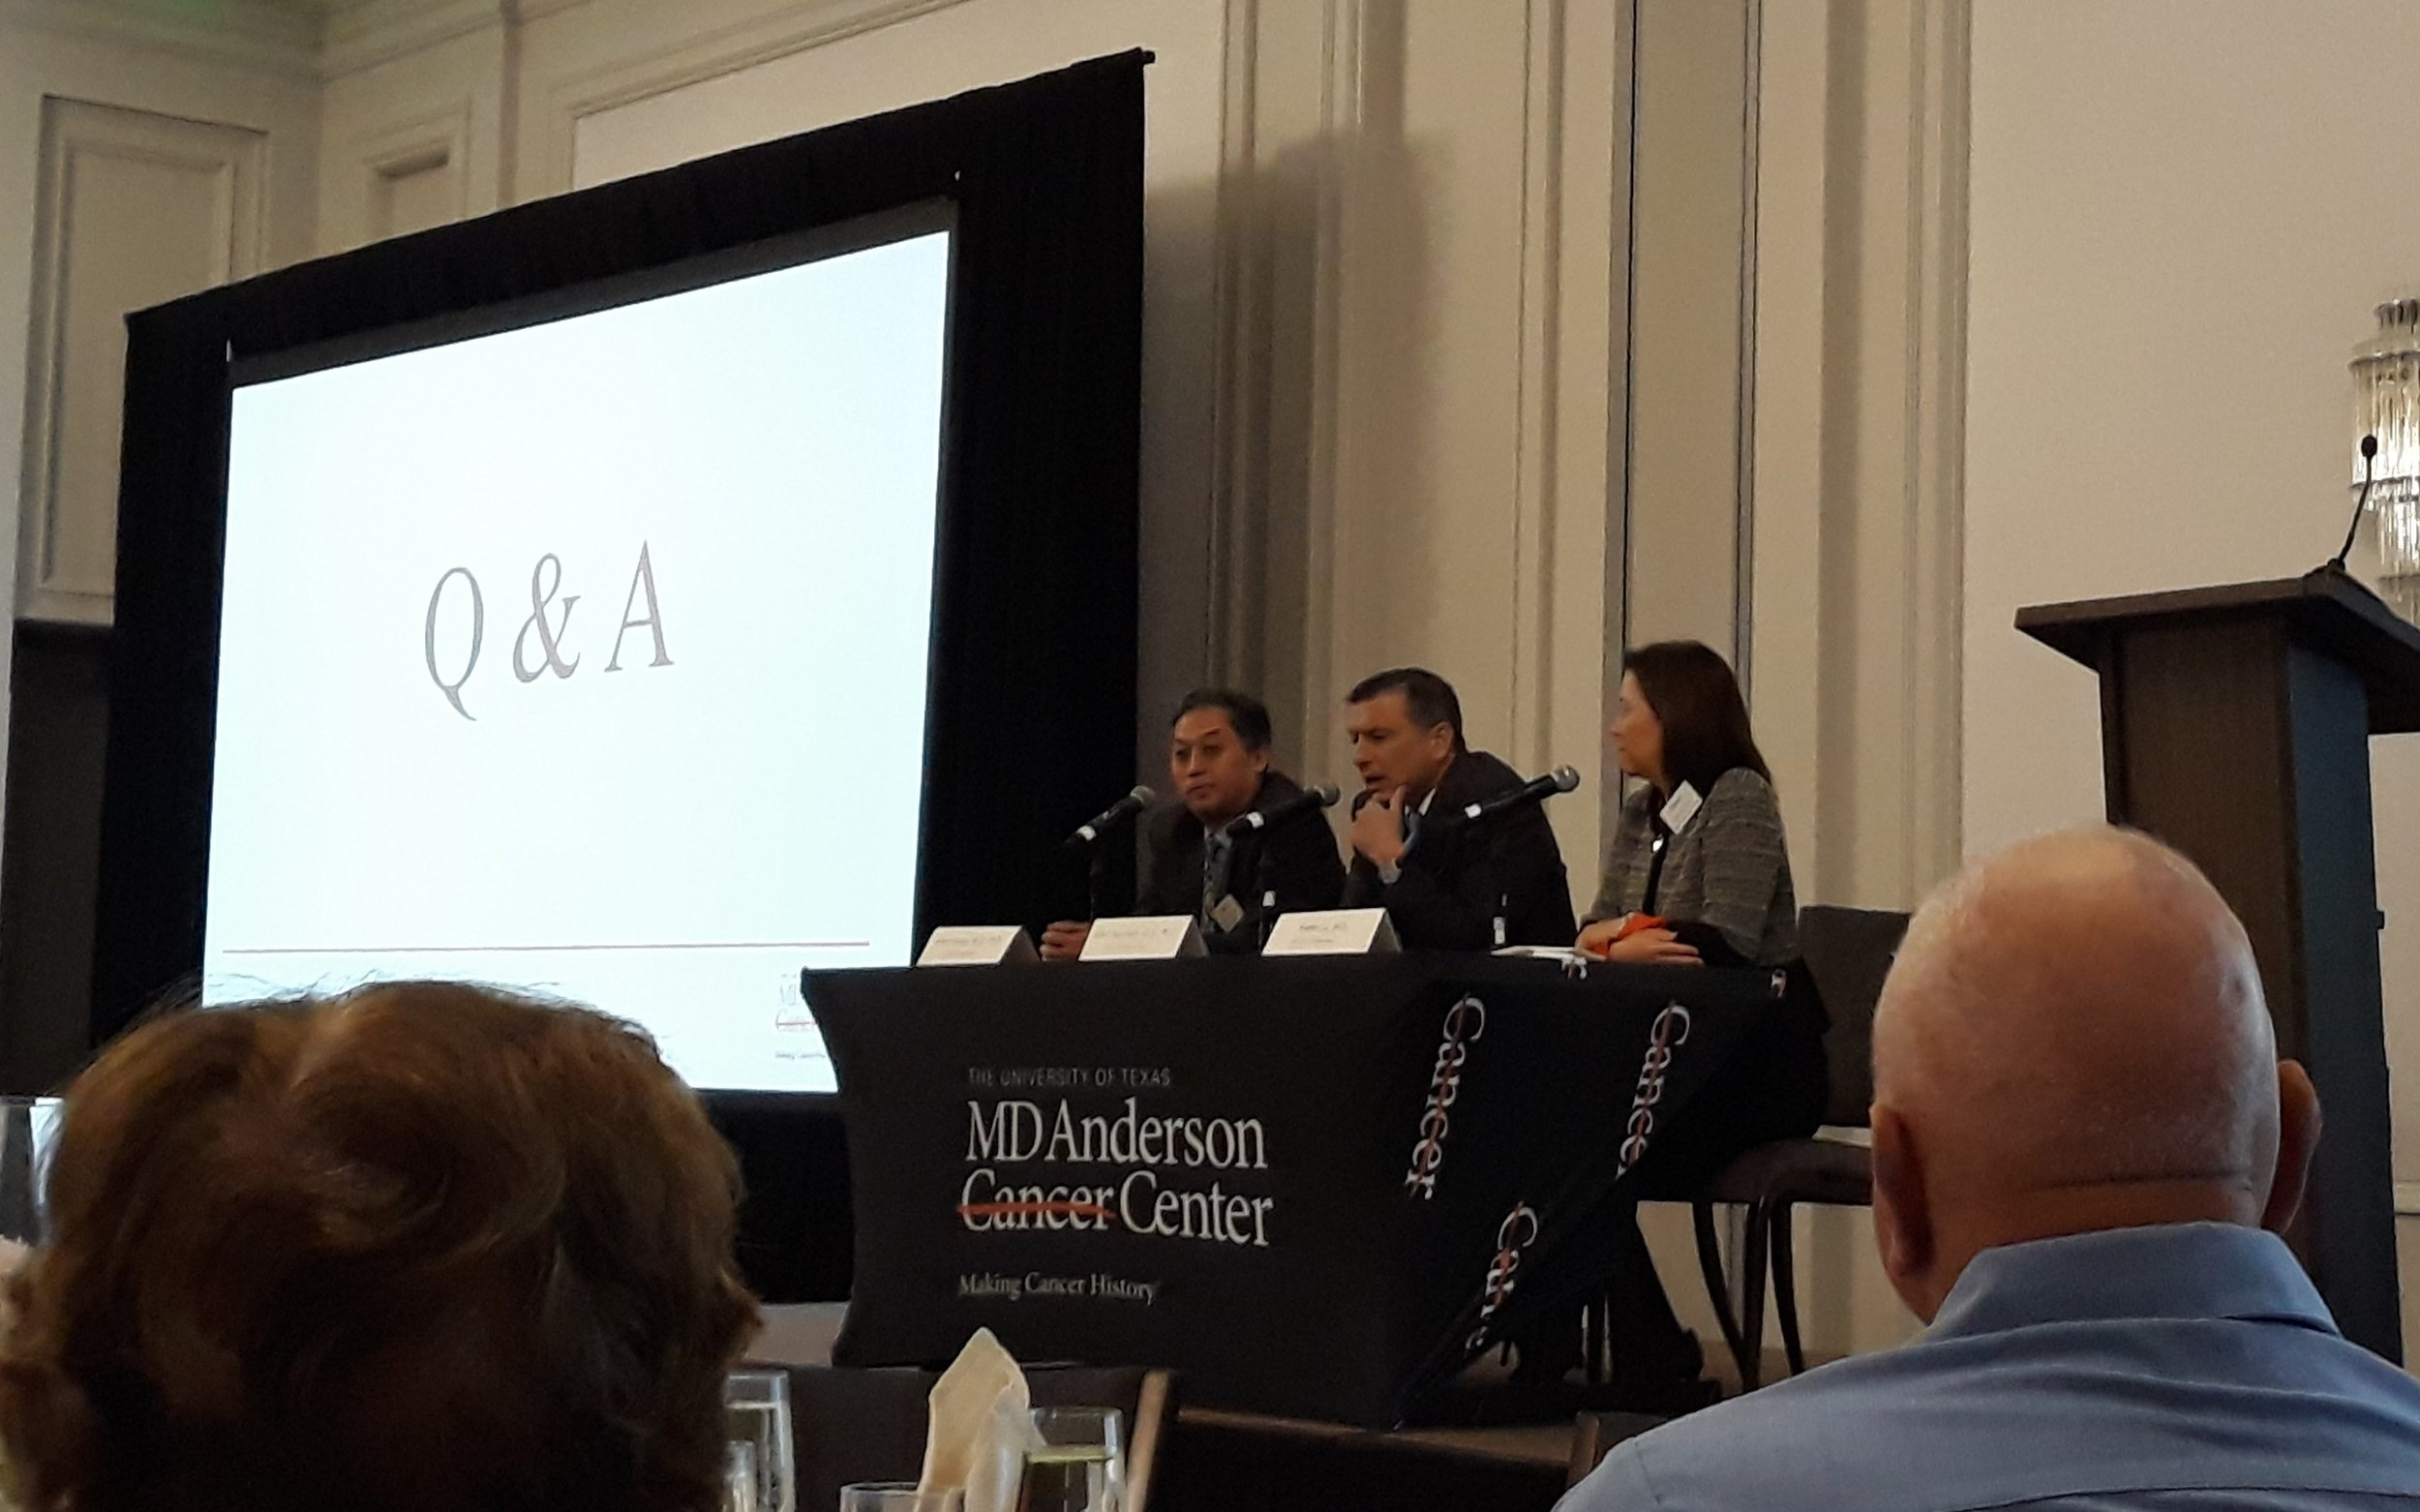 Q & A Session with MD Anderson